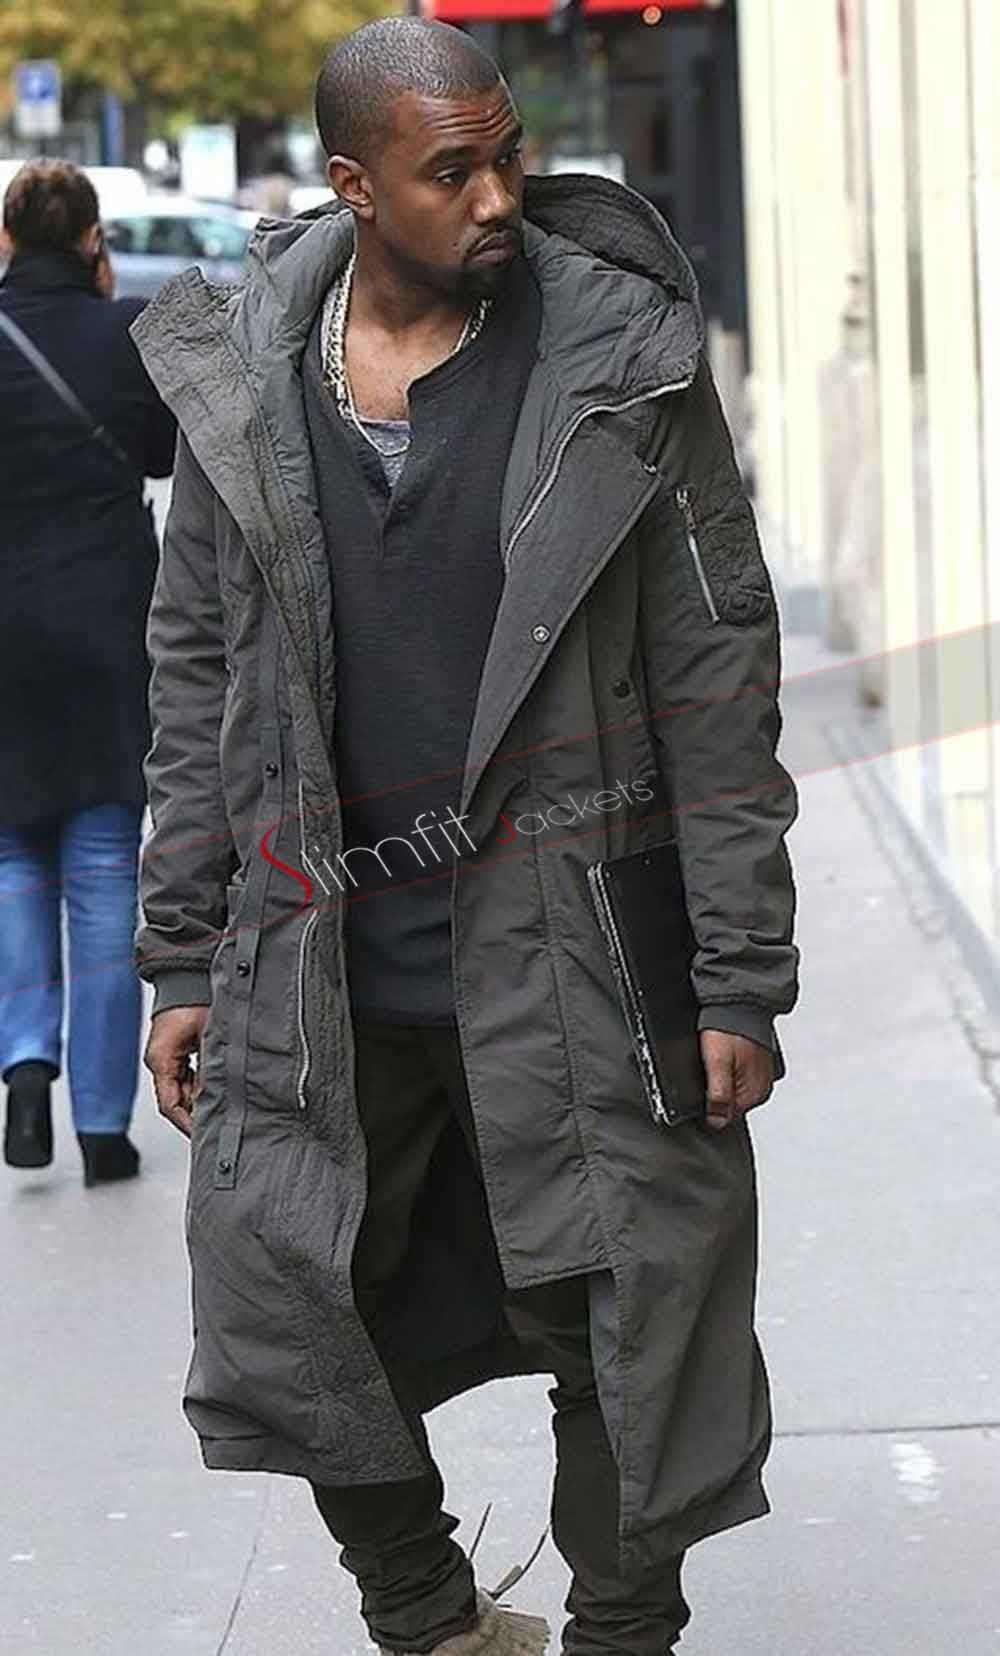 af5f12387a446 Kanye West Stylish Long Grey Coat in 2019